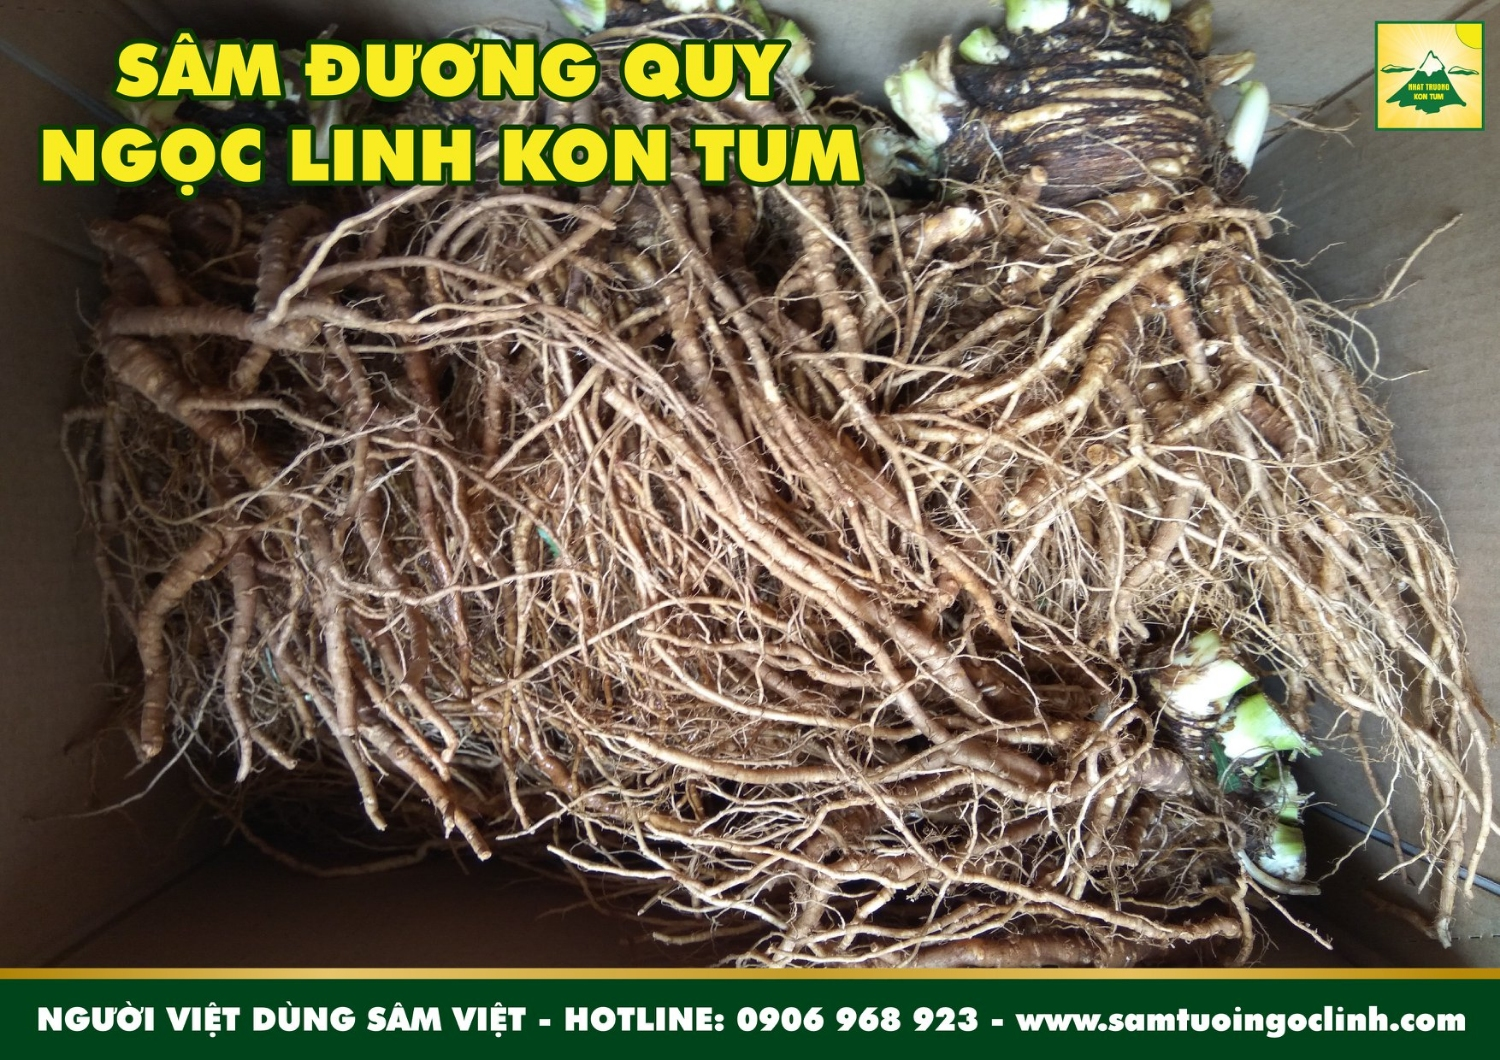 sam duong quy tuoi